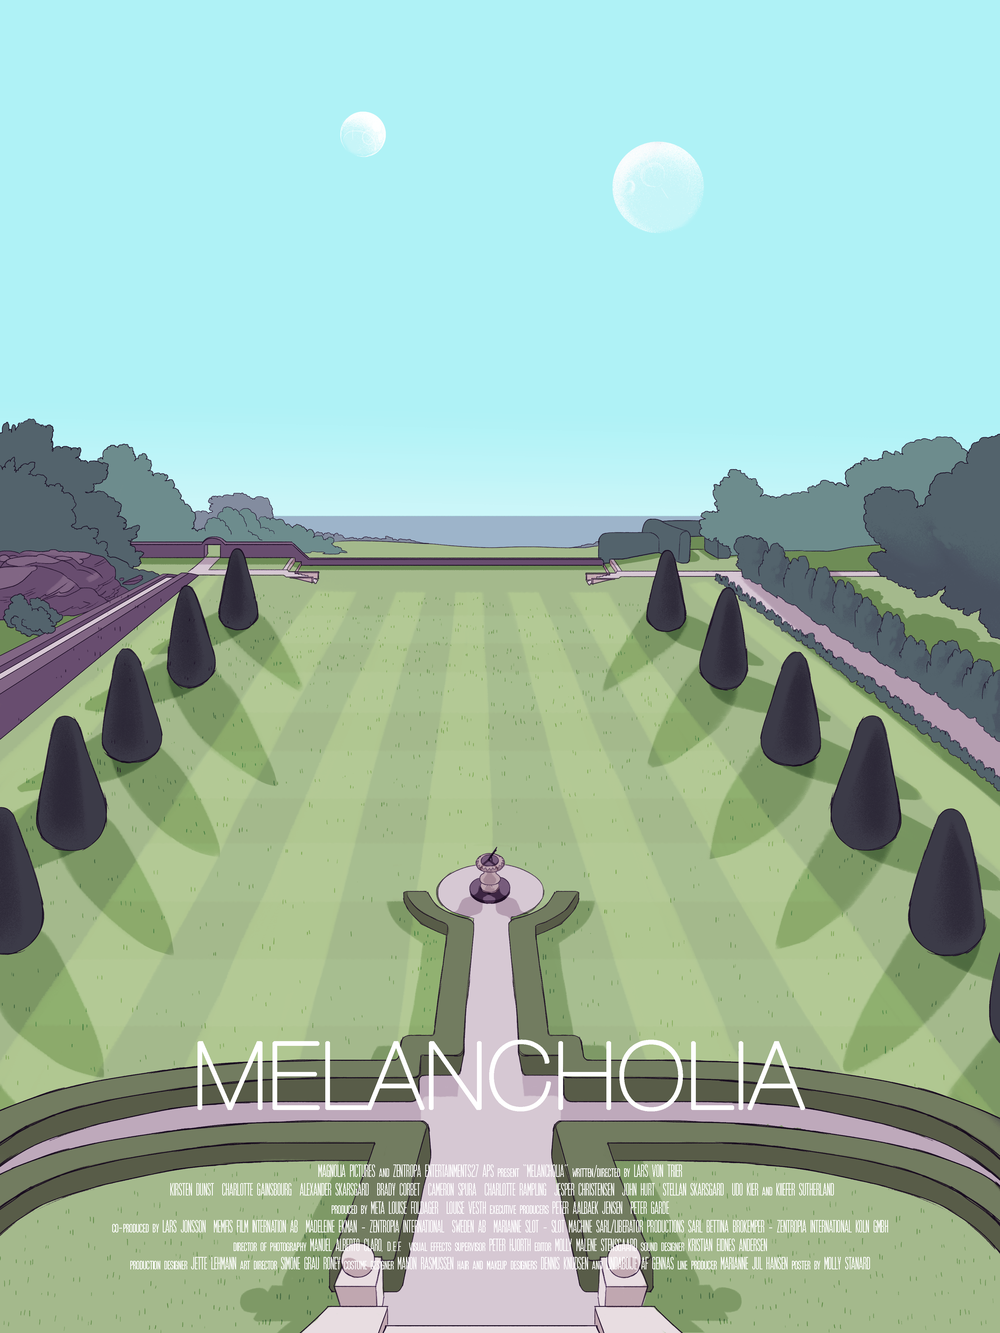 melancholia-coloredit.png